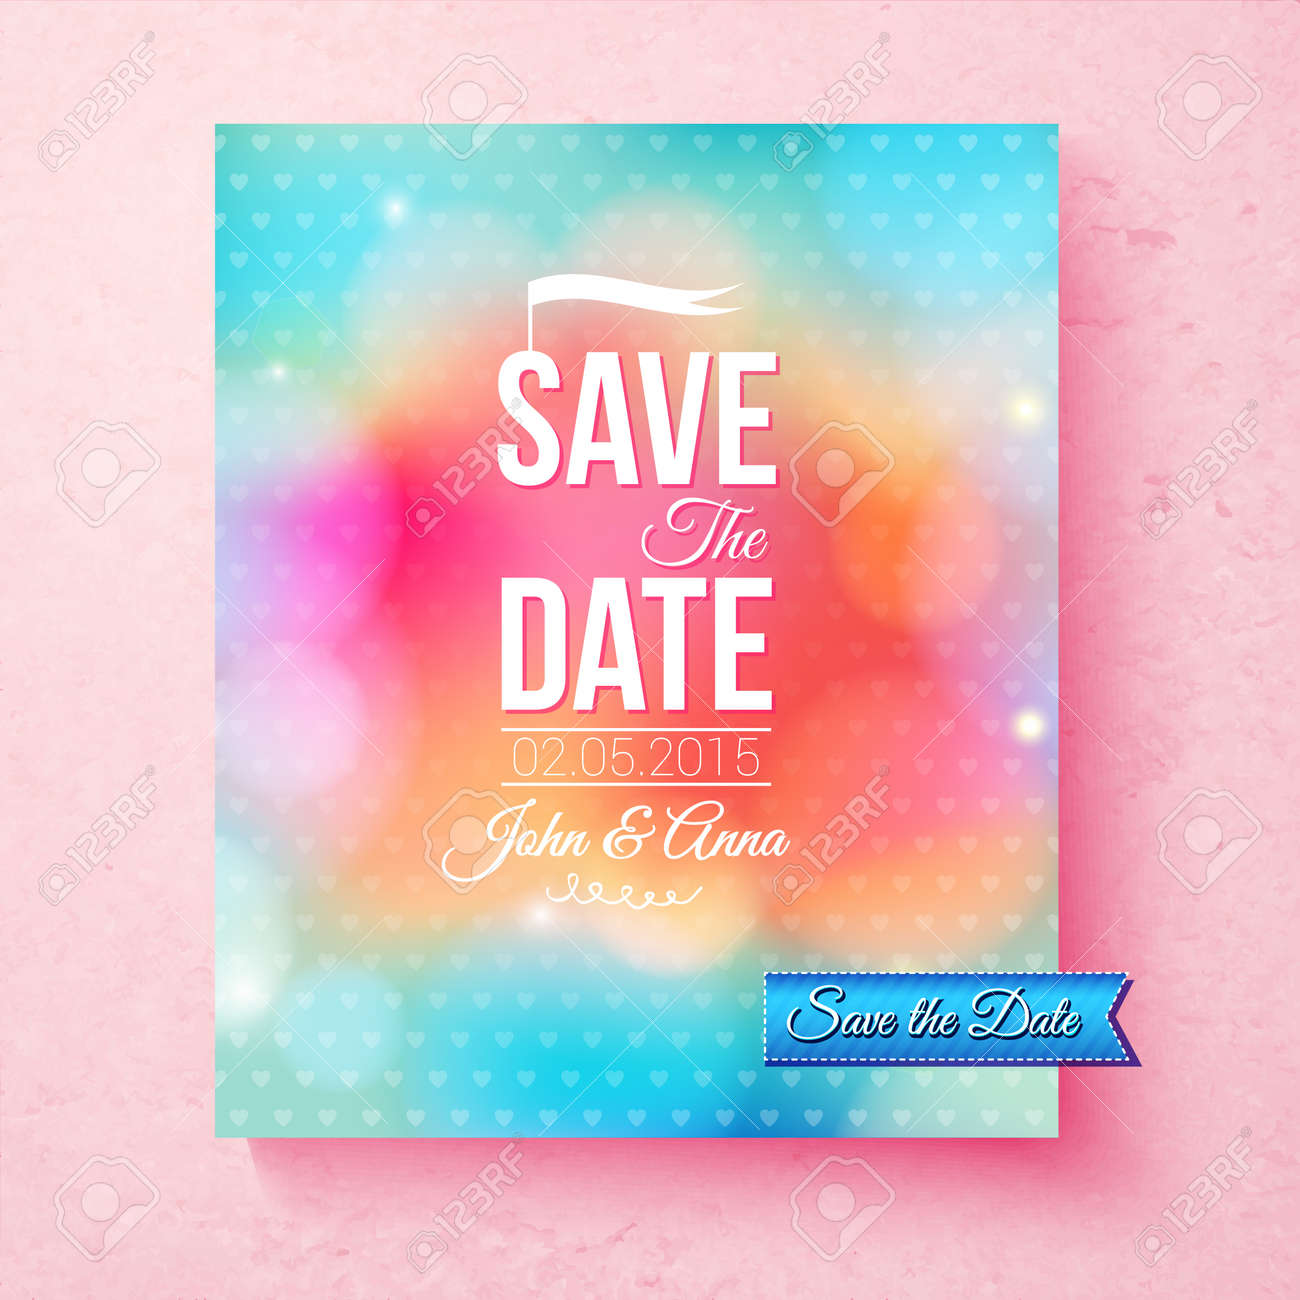 Colorful save the date template in blended pink orange and blue colorful save the date template in blended pink orange and blue textured with dots with maxwellsz